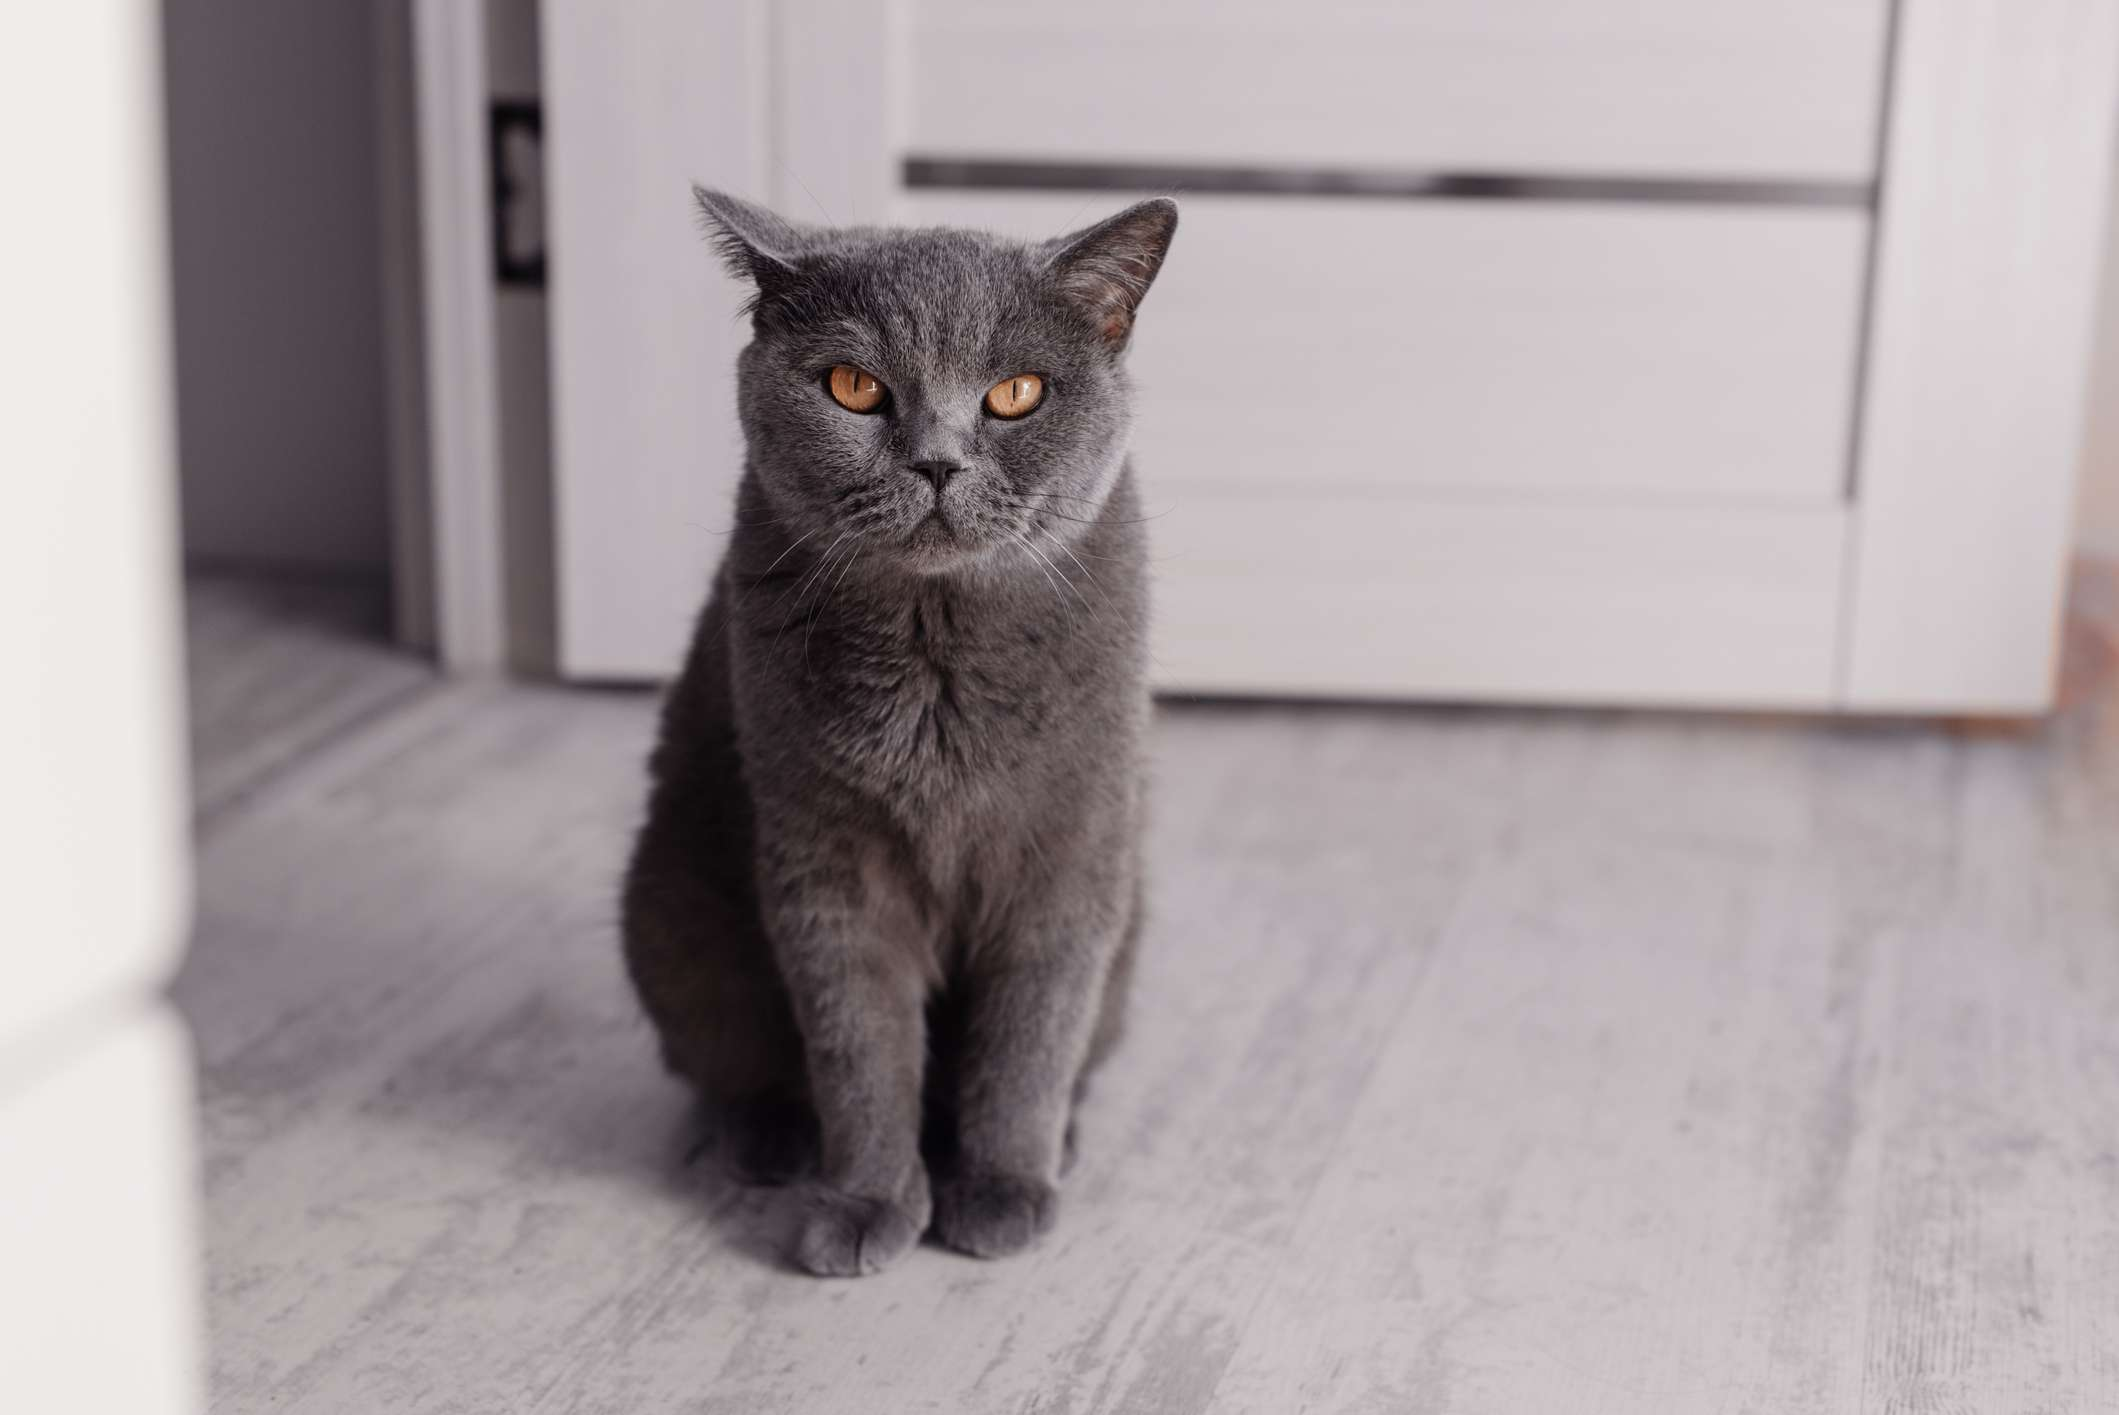 A gray British Shorthair cat sitting upright on the floor and looking at the camera.